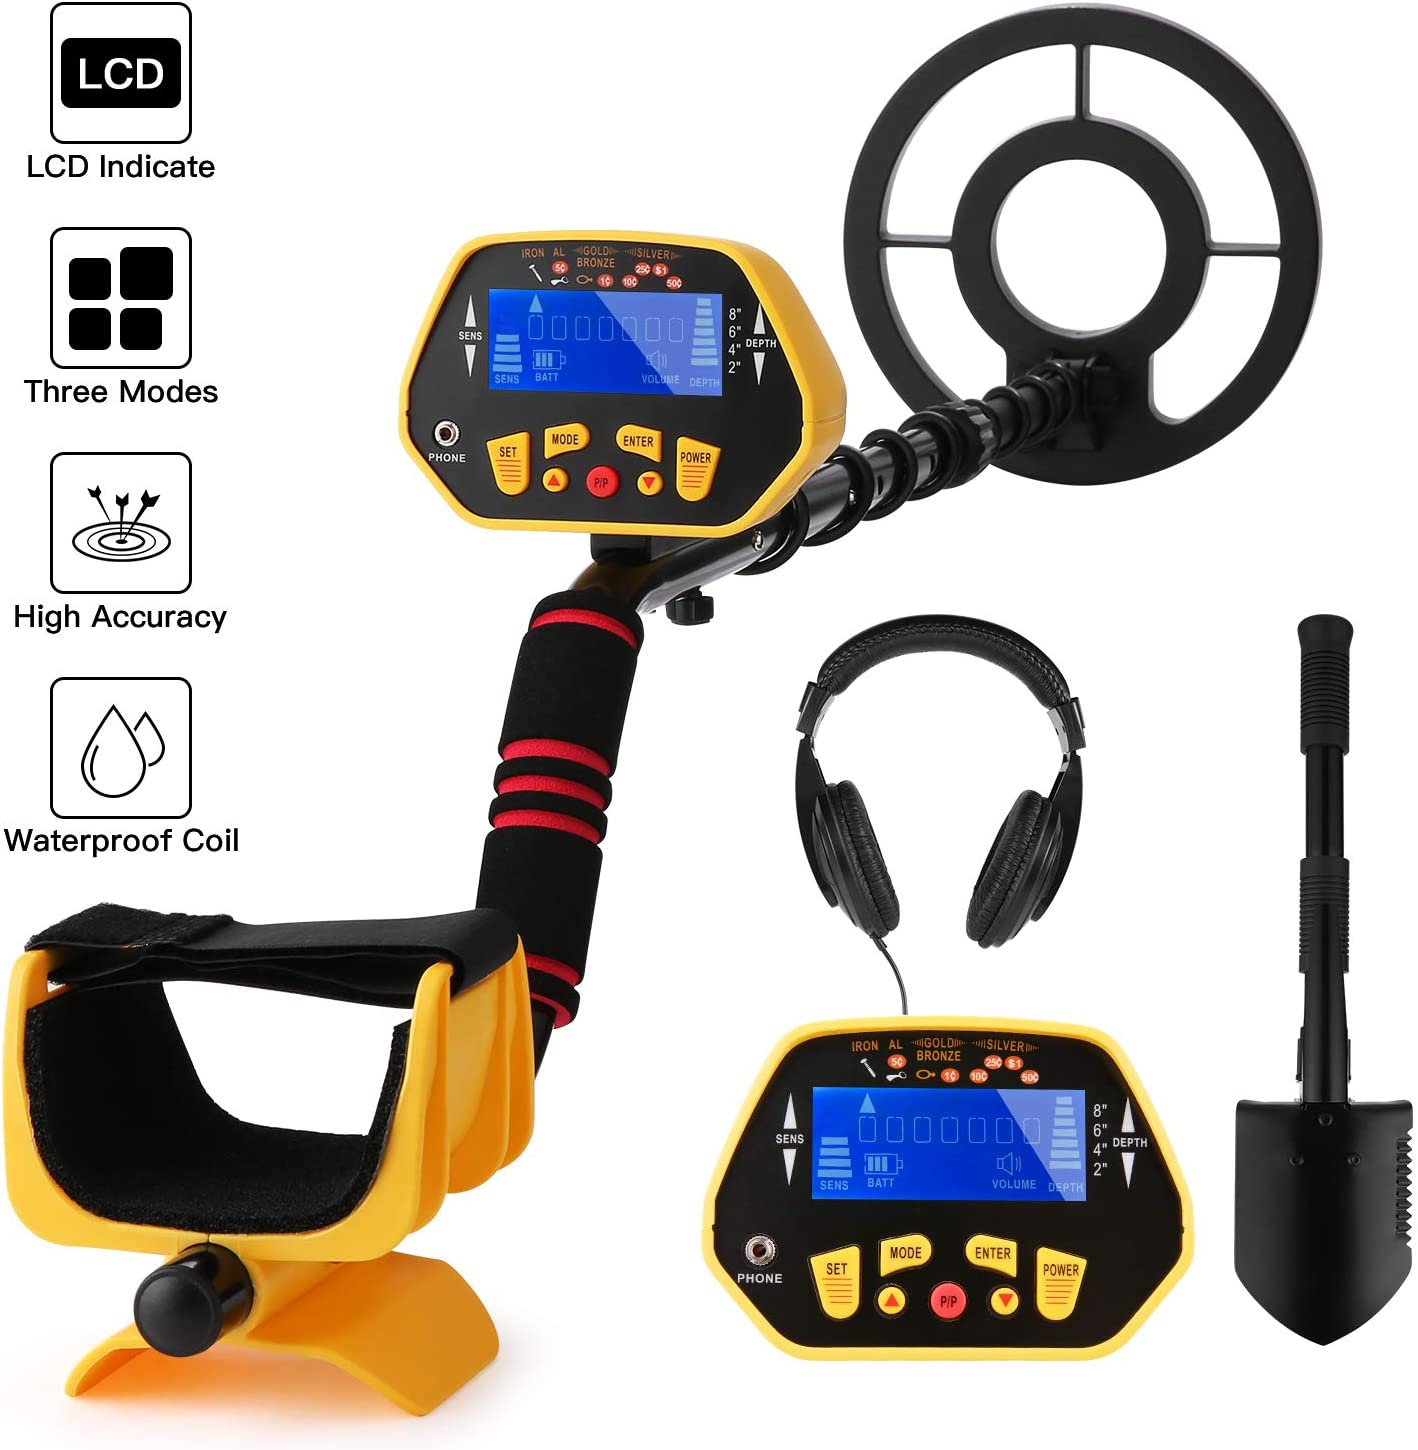 Noeler Metal Detector,High Accuracy Detector with Pinpoint Function,Professional Waterproof Metal Detectors for Adults and Kids Size 2 with Headphones